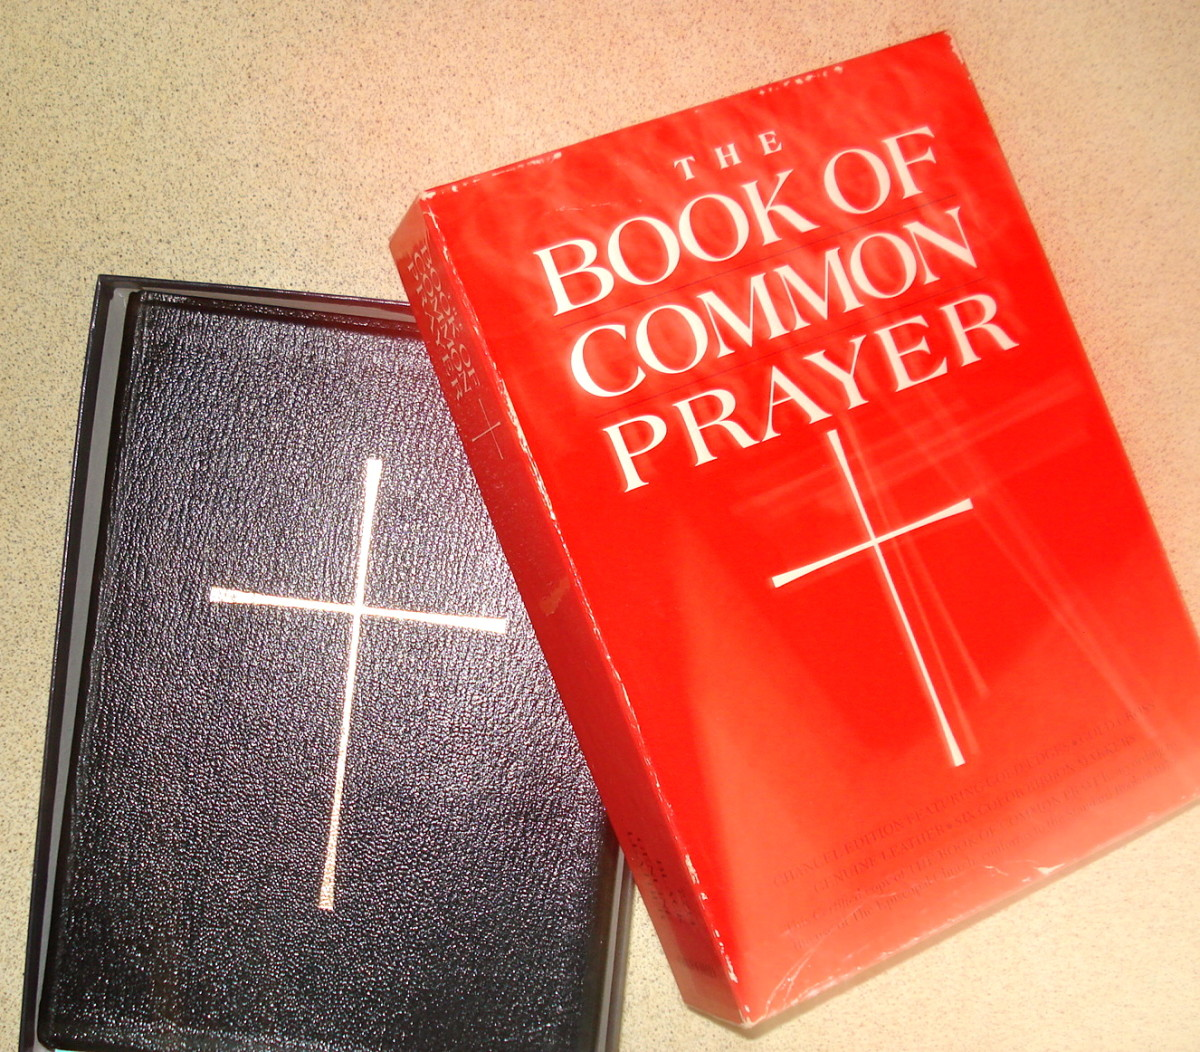 The American Episcopal Book of Common Prayer